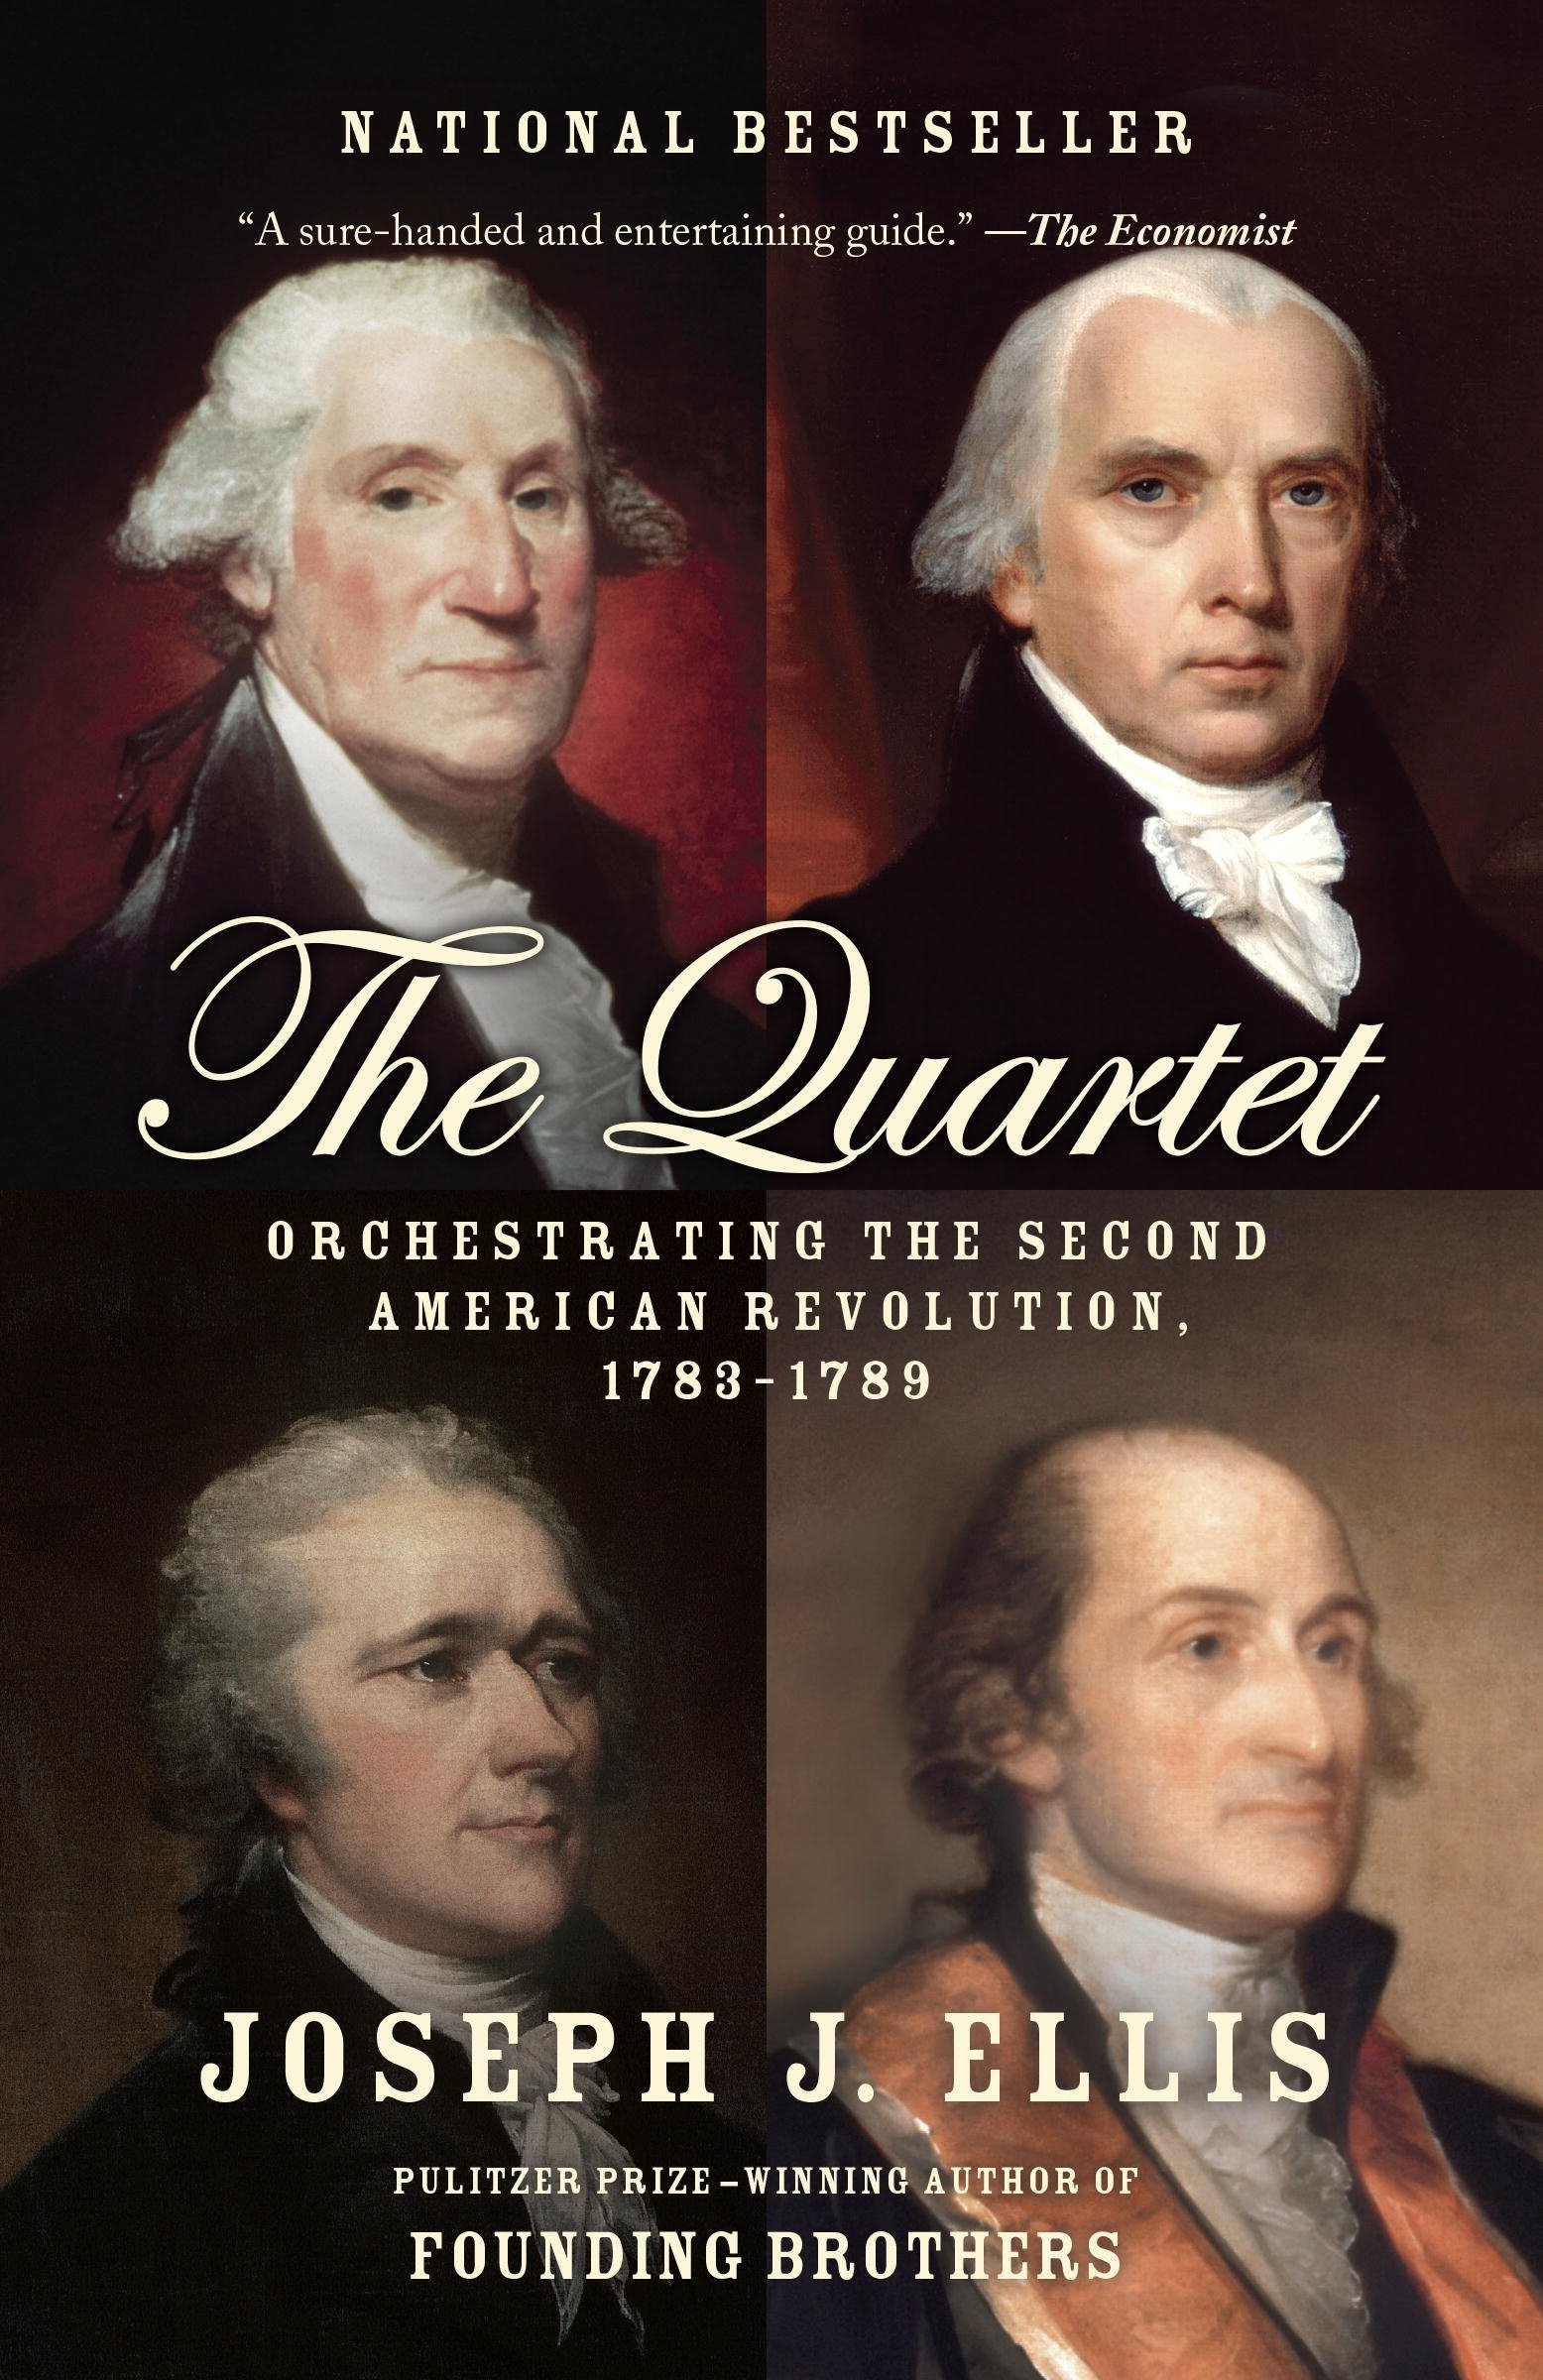 the quartet orchestrating the second american revolution  the quartet orchestrating the second american revolution 1783 1789 joseph j ellis 9780804172486 com books